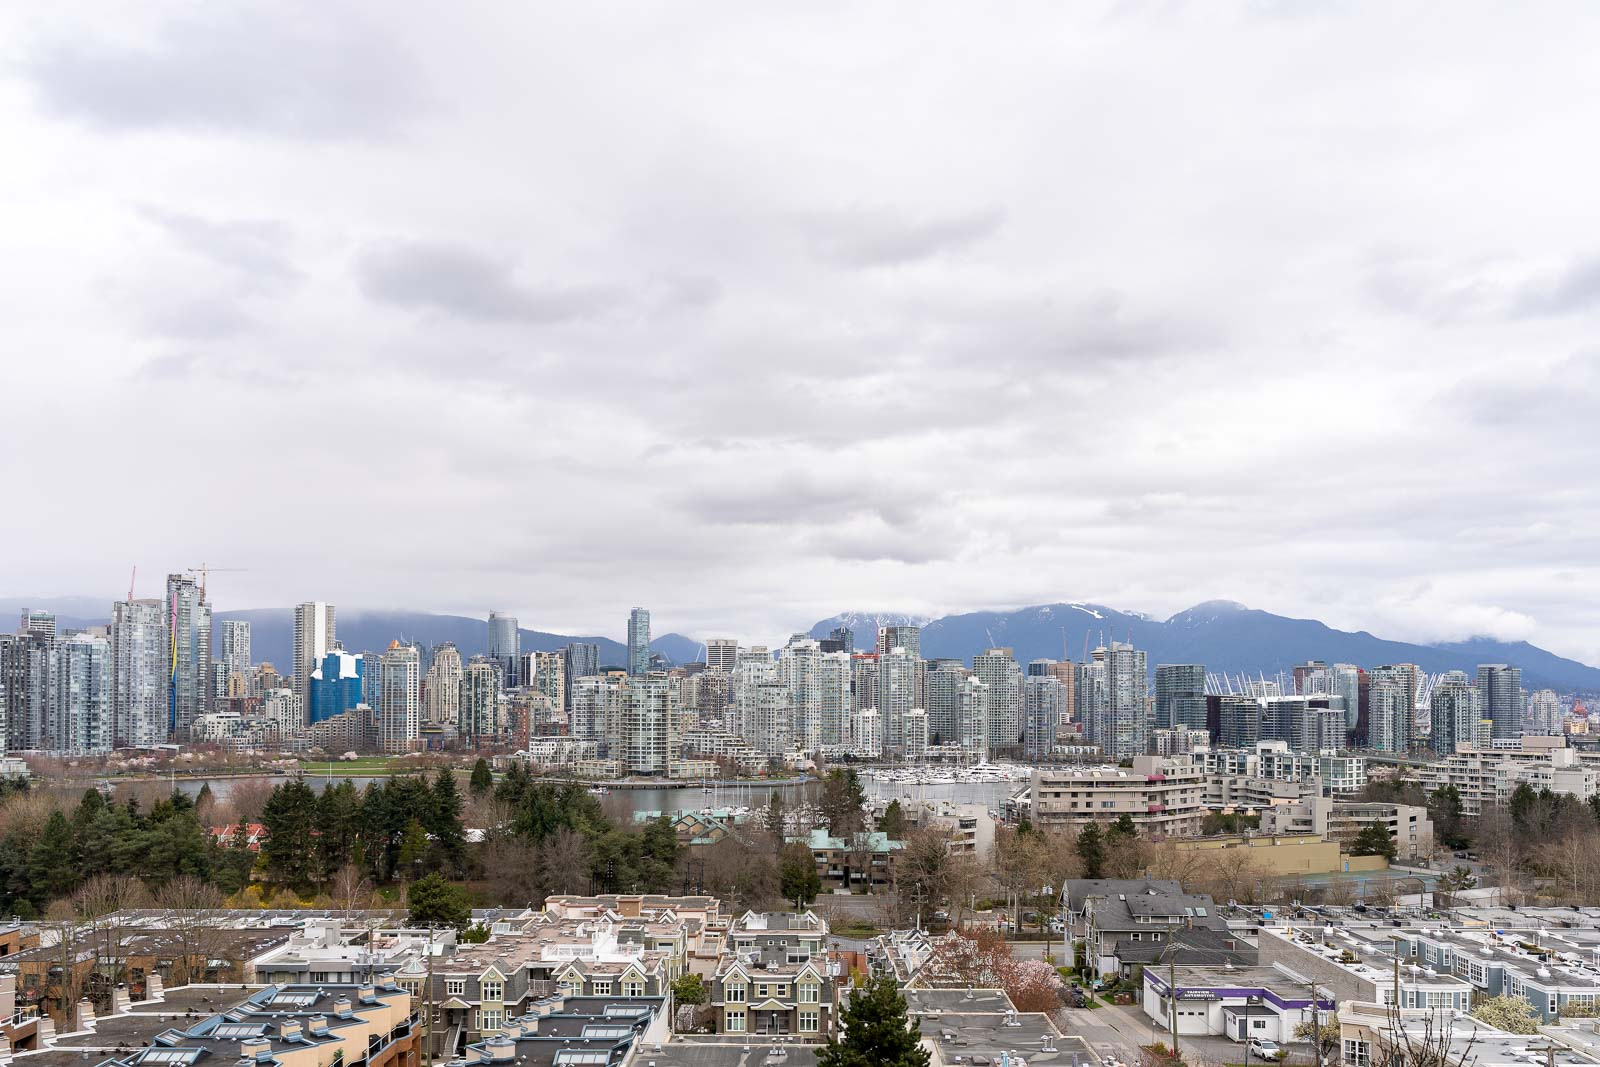 view from Fairview condo to downtown Vancouver